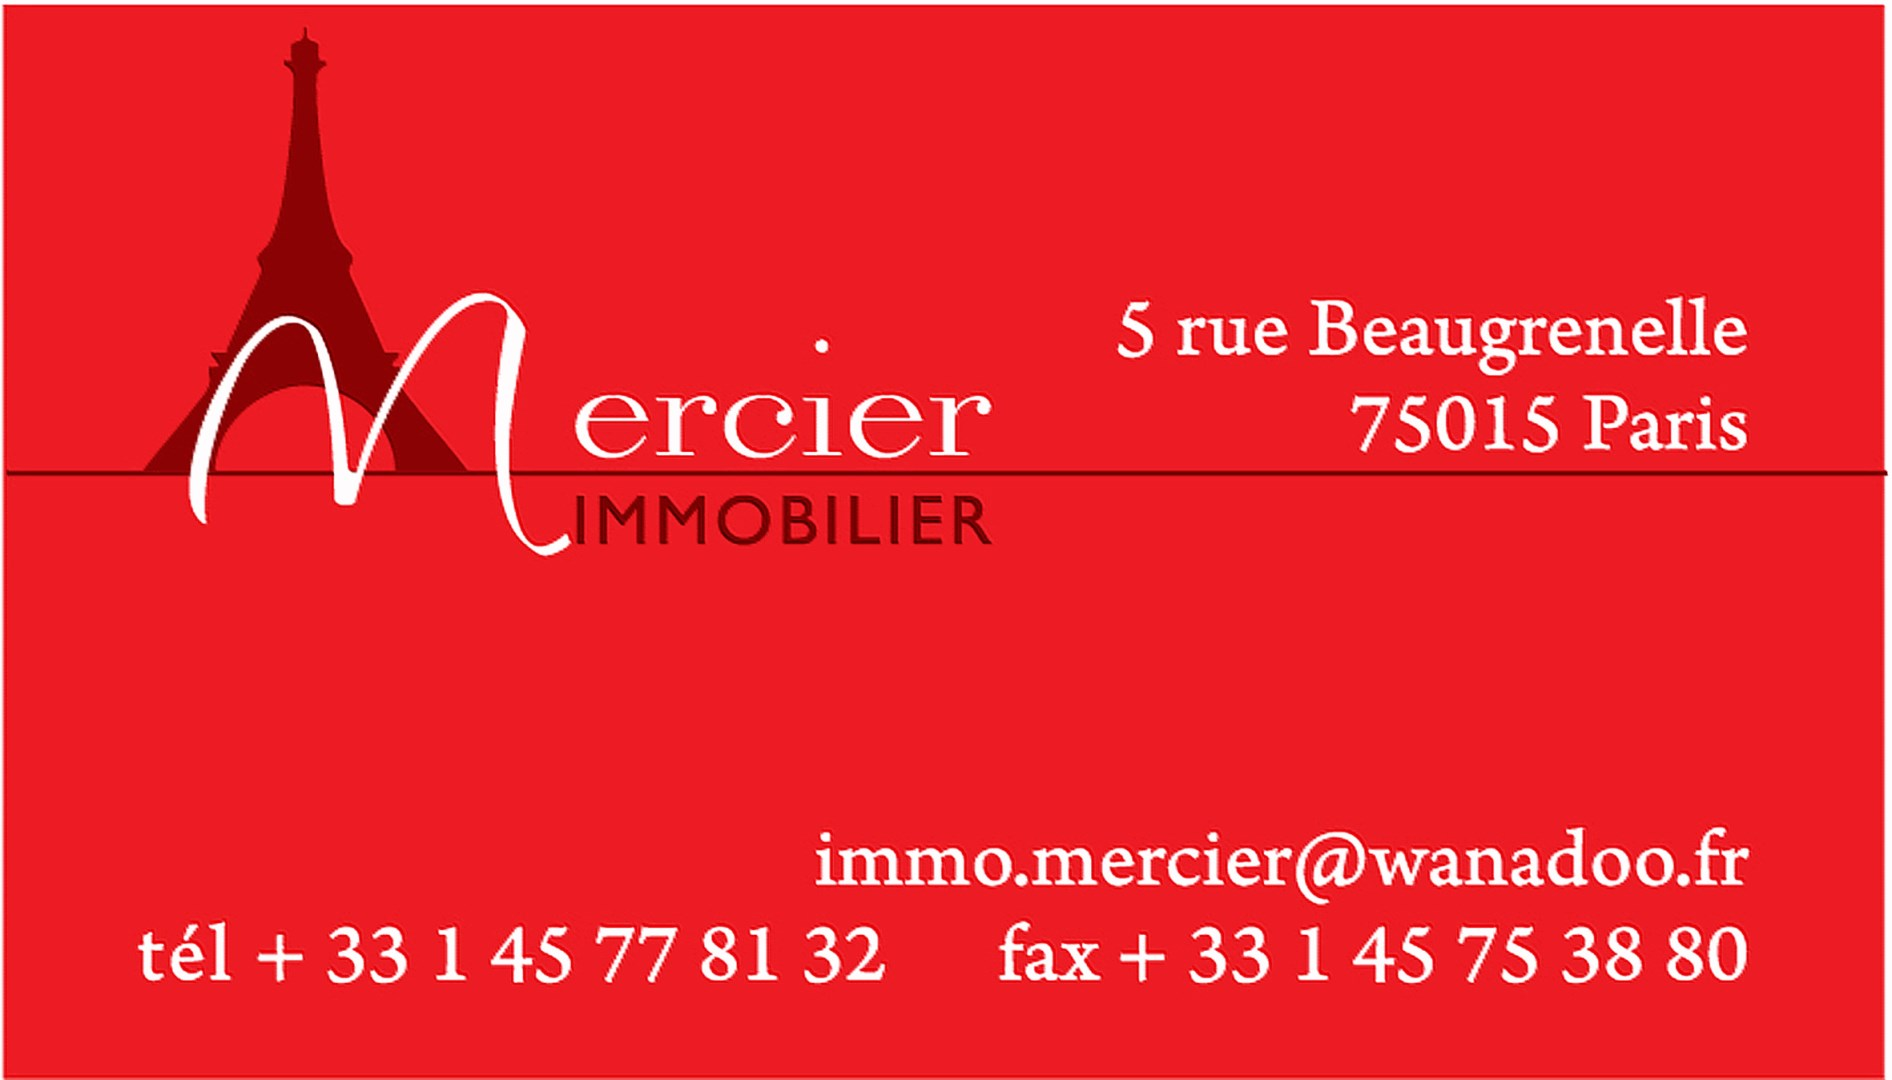 Mercier immoblier agence immobili re paris 15 me for Agence immobiliere 15eme